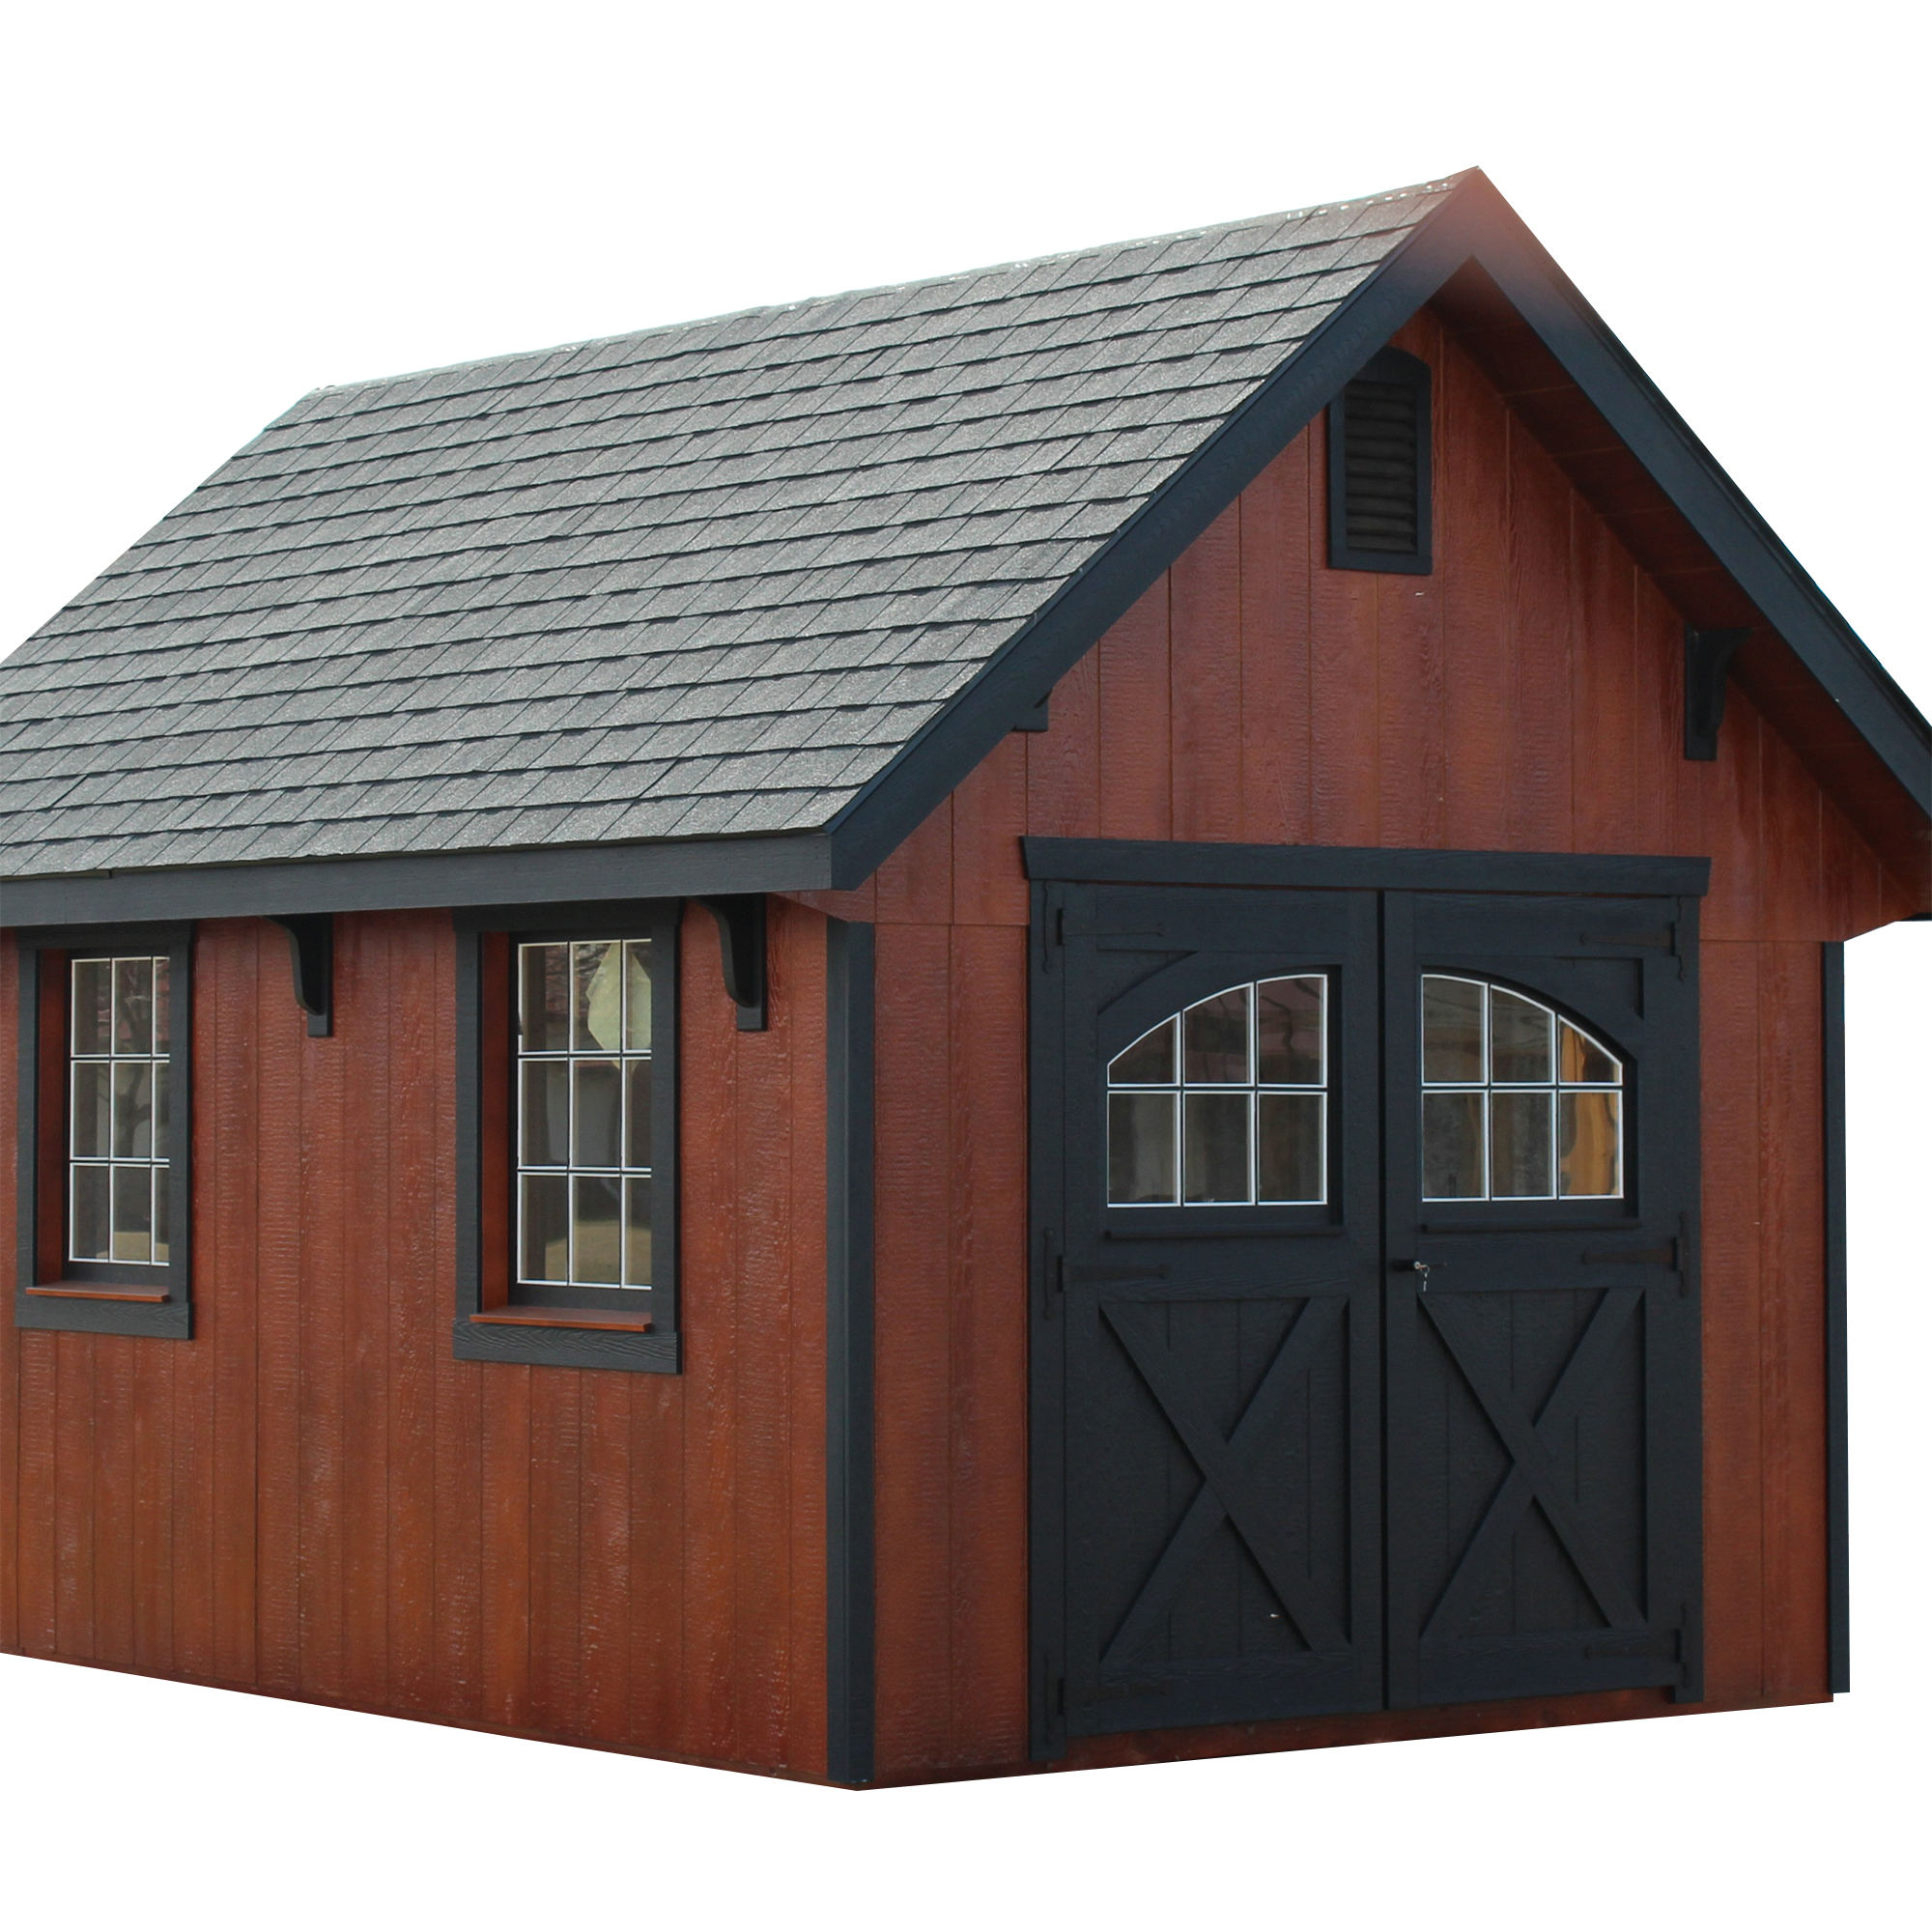 "12"" Overhangs on Garden Shed"